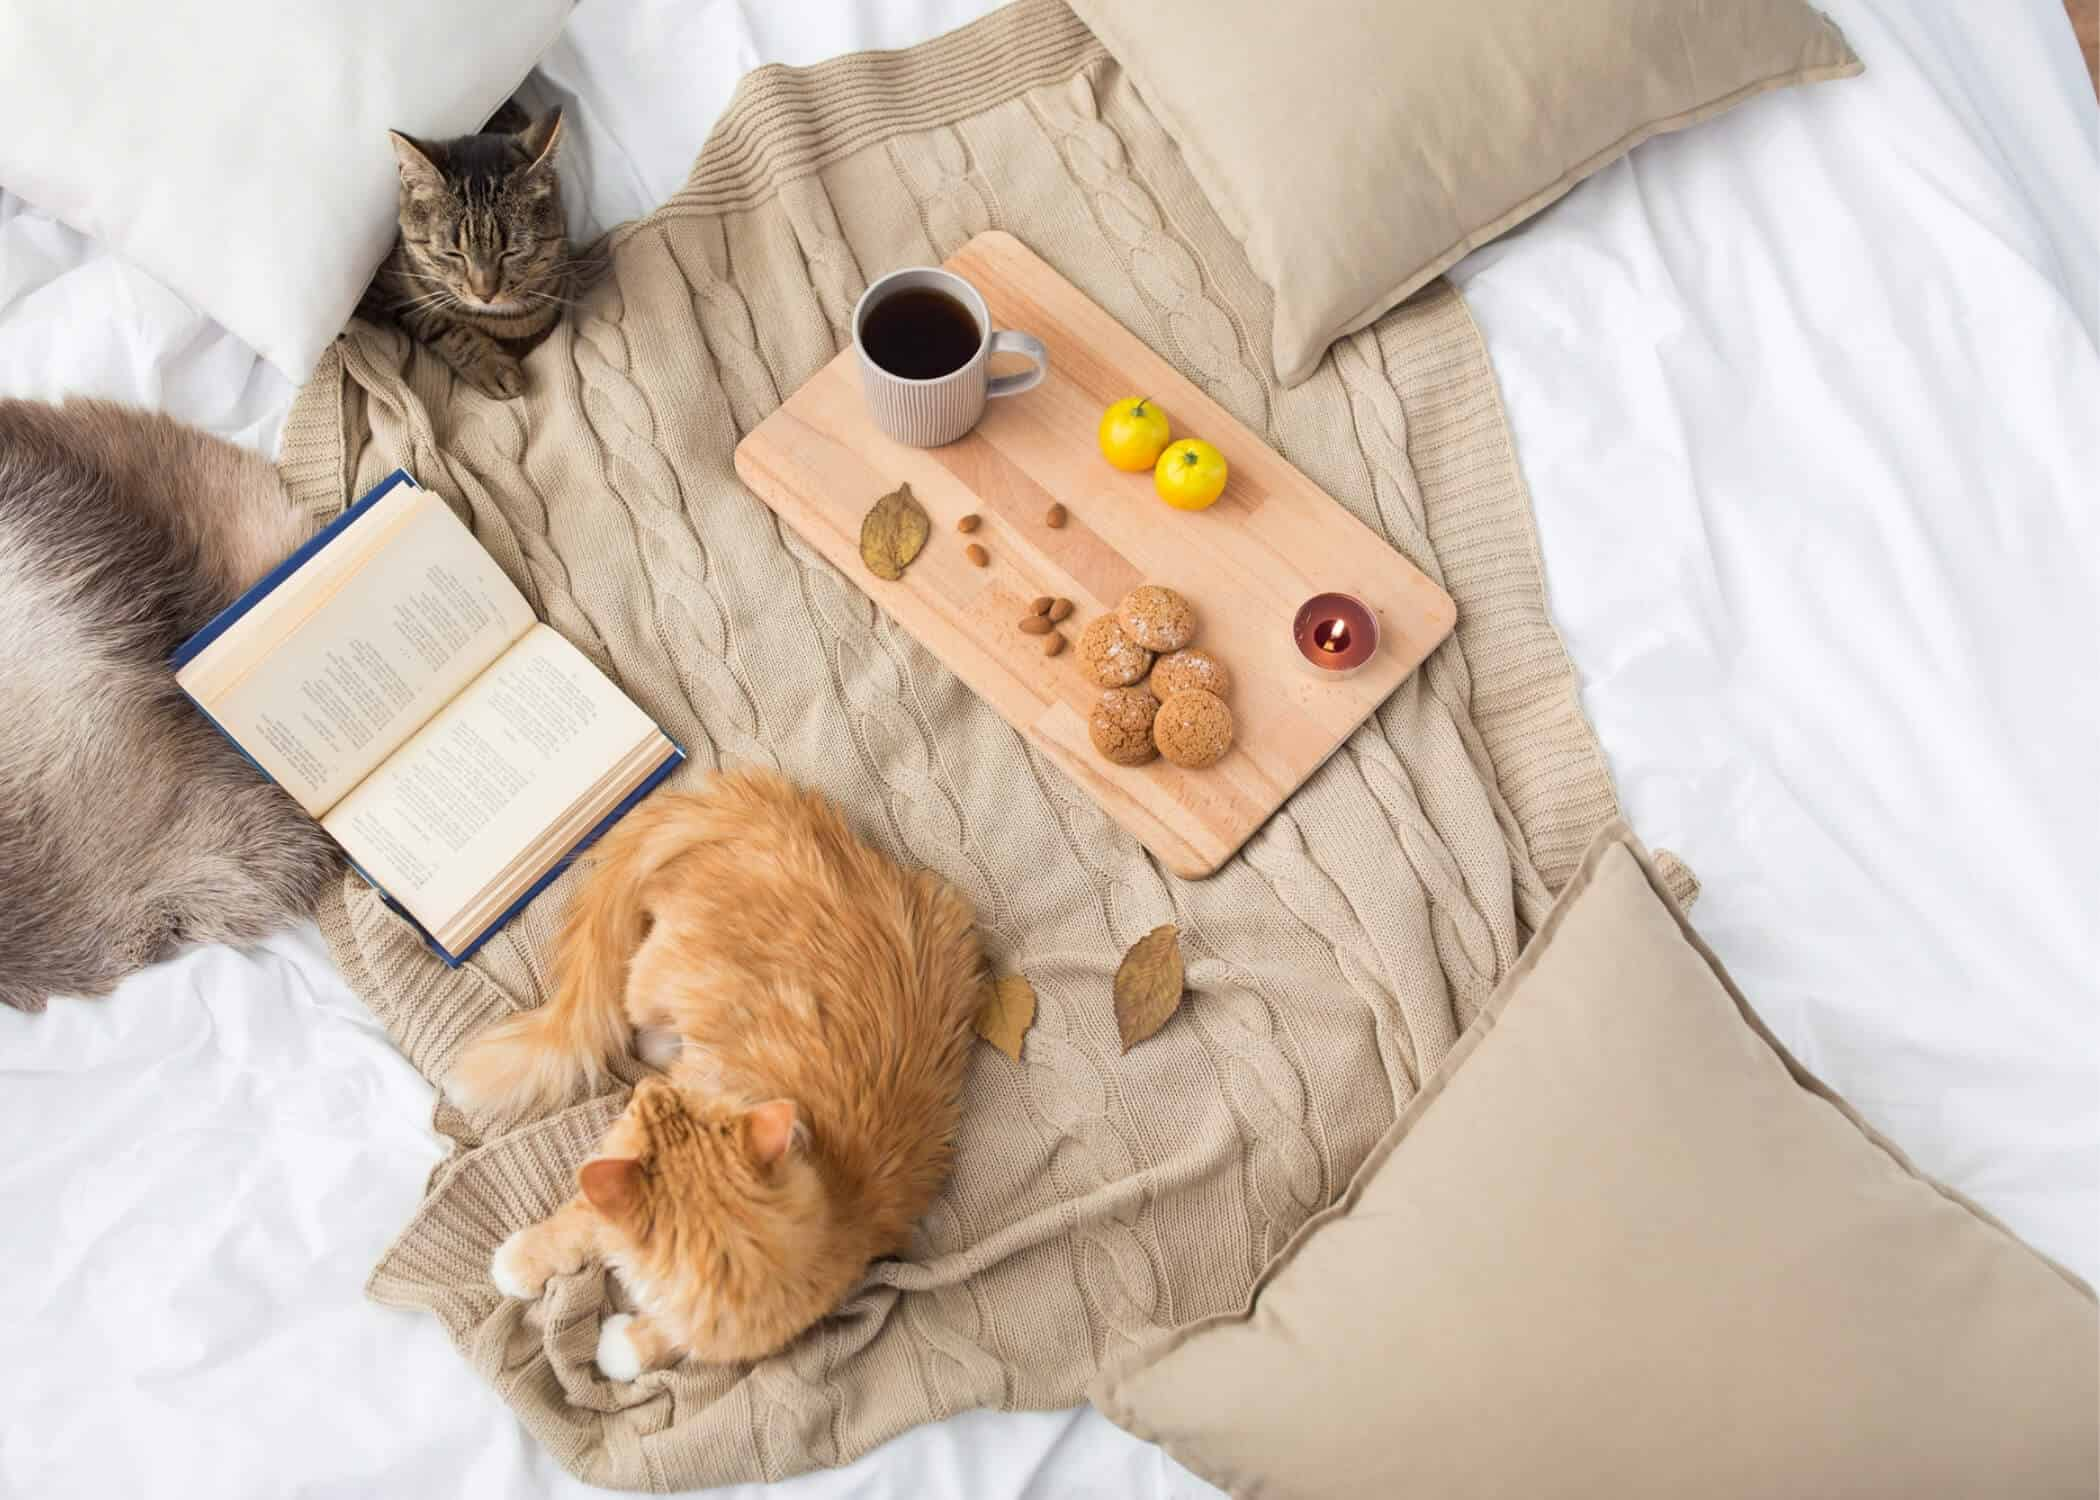 Cats on a bed with an open book and green tea.